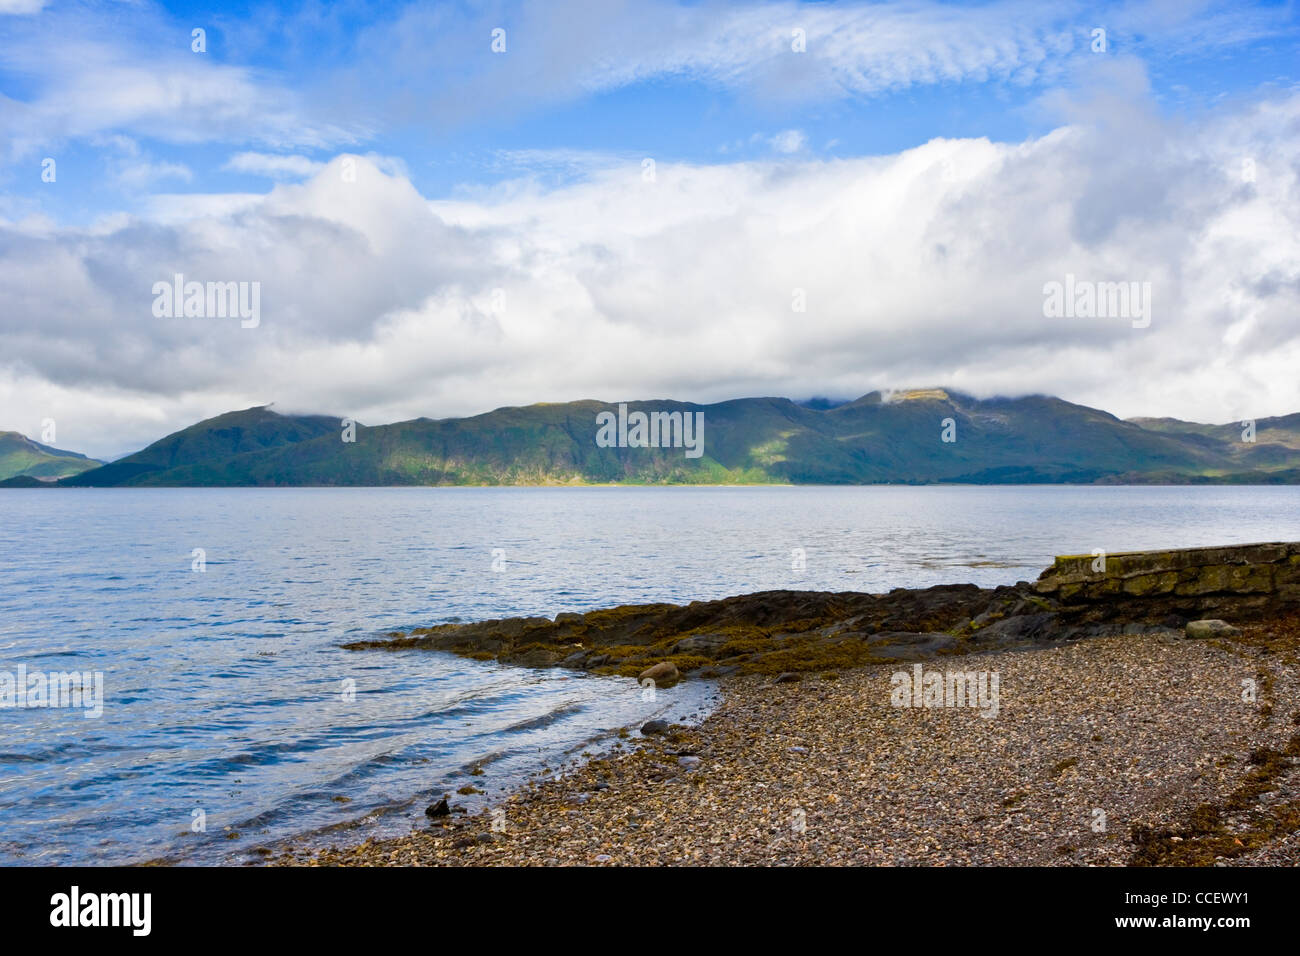 View across Loch Linnhe a sea-loch on the west coast of Scotland - Stock Image